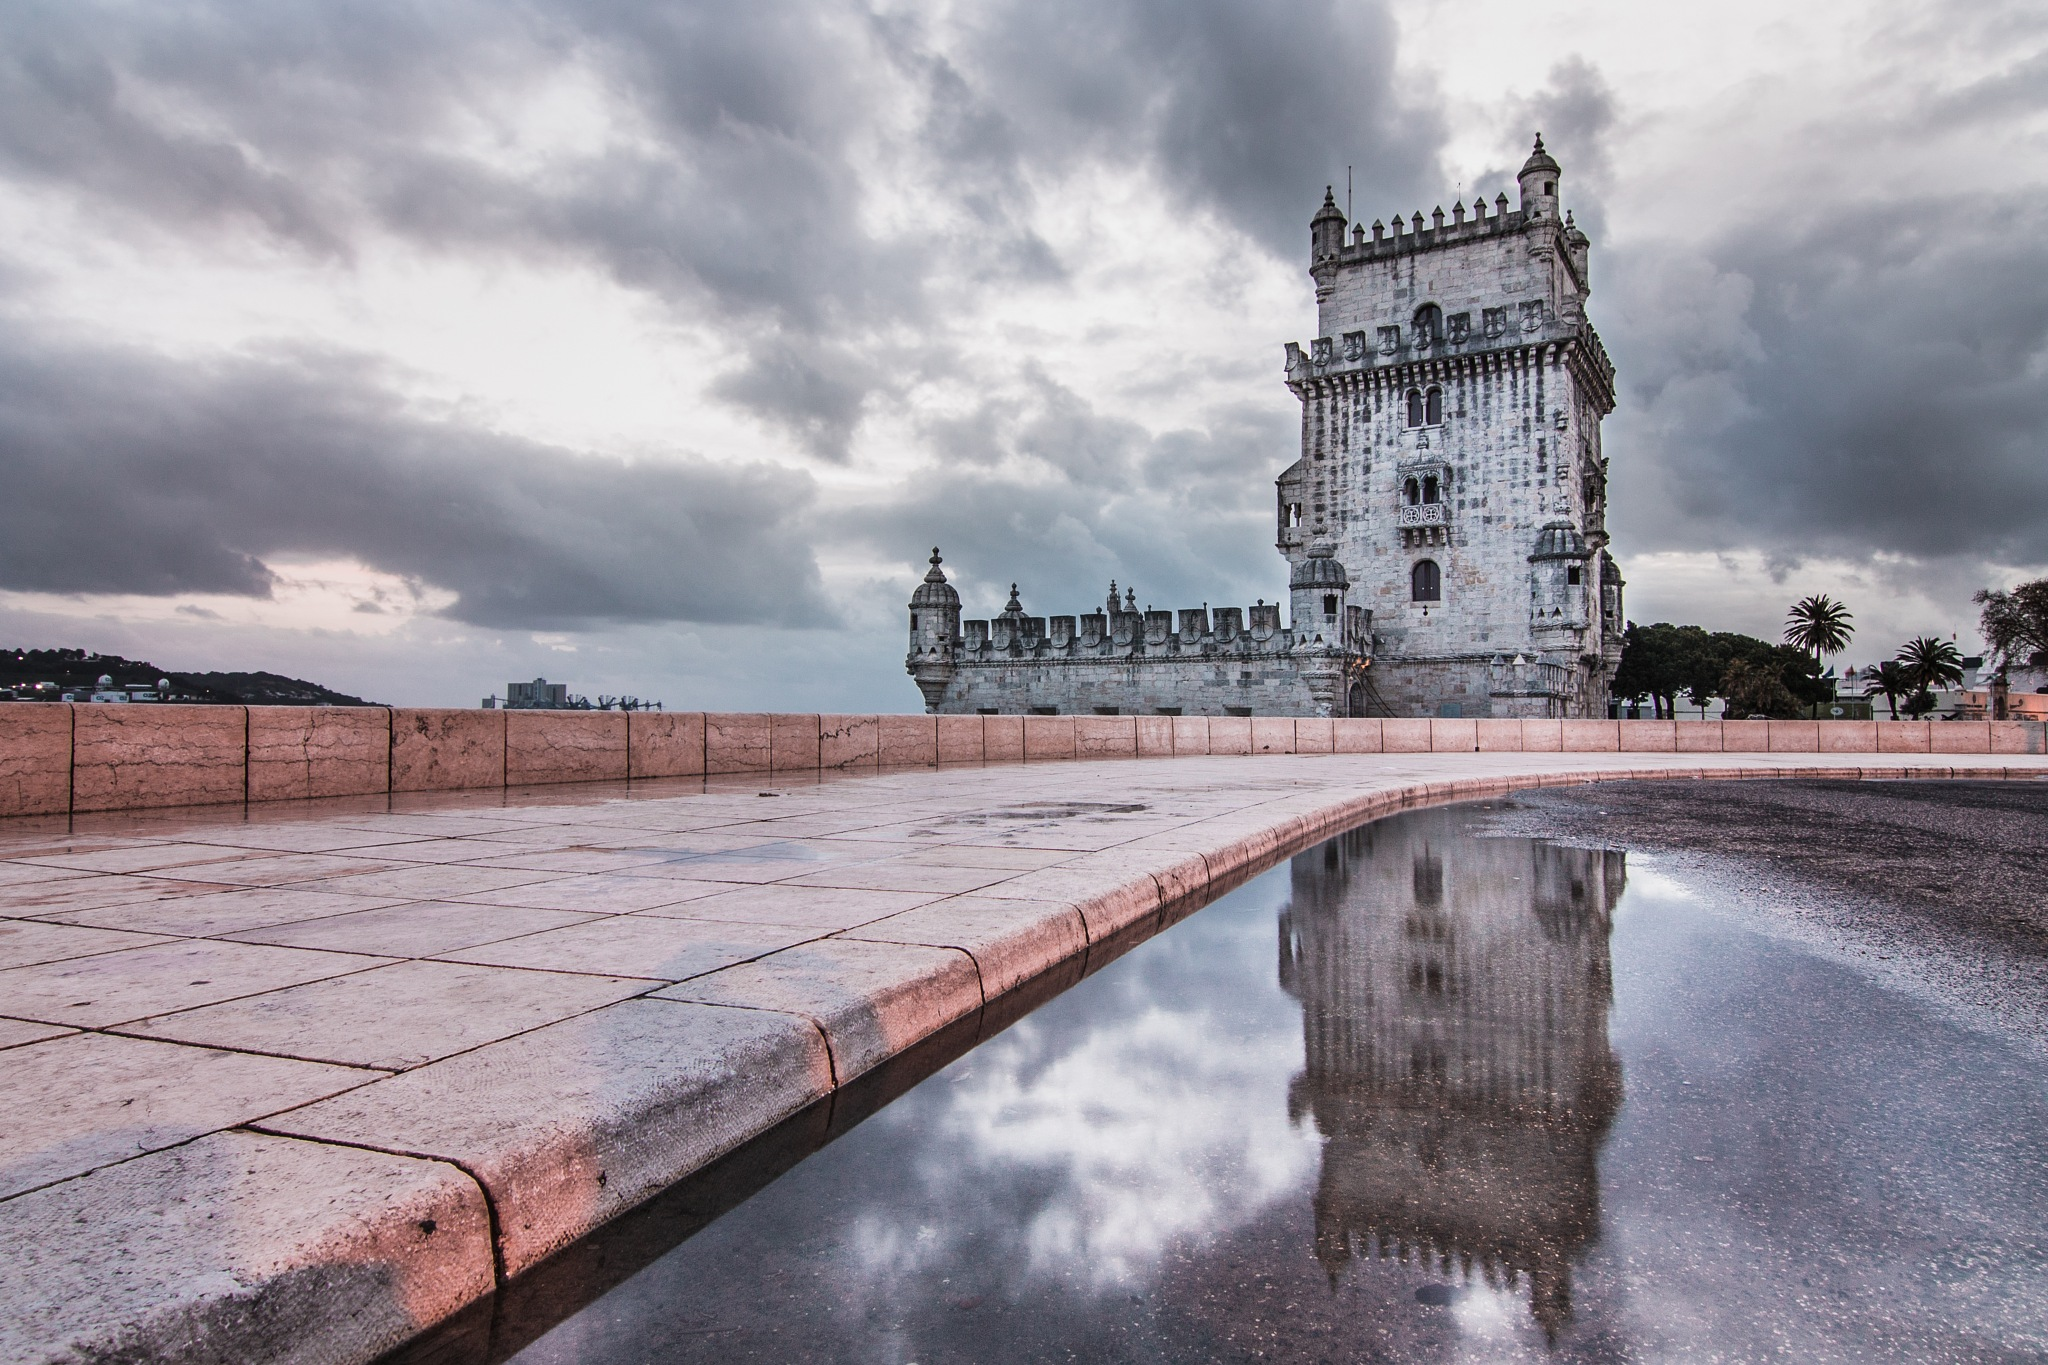 Reflections and Beyond by Barba Salgada